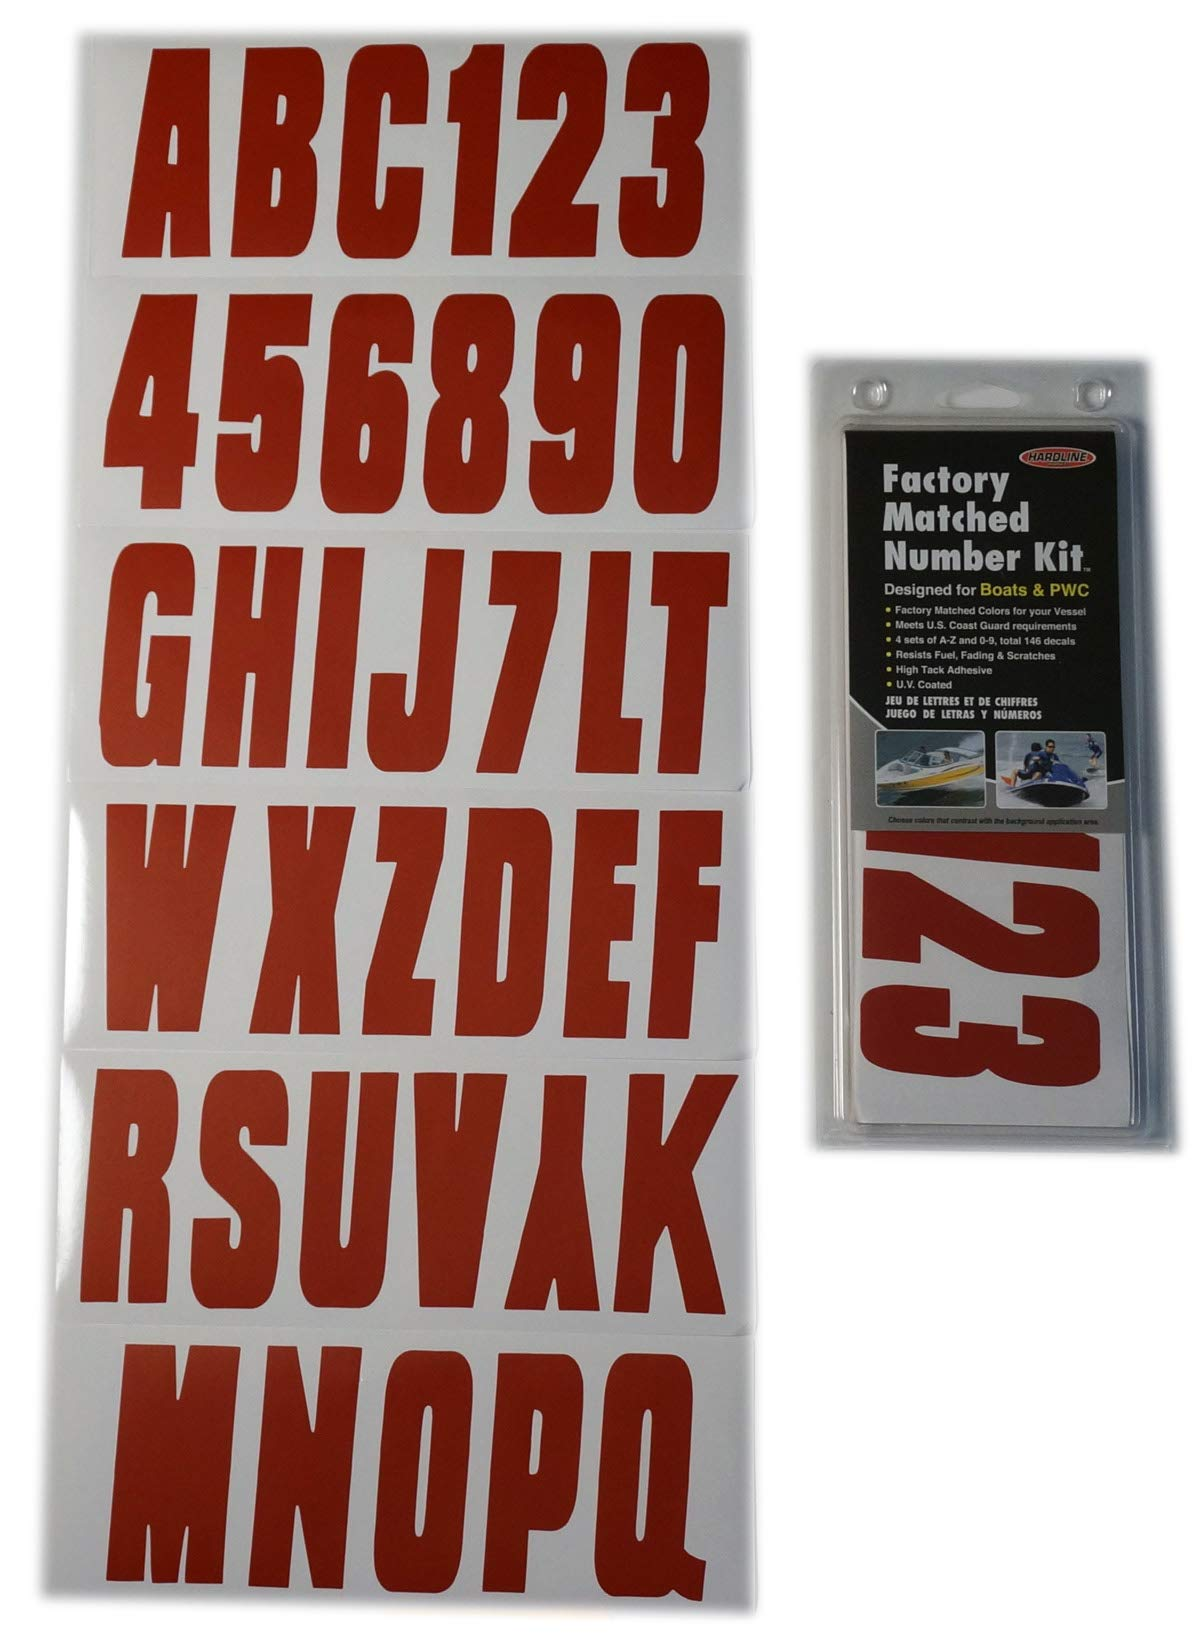 Hardline Products Series 350 Factory Matched 3-Inch Boat & PWC Registration Number Kit, Solid Red